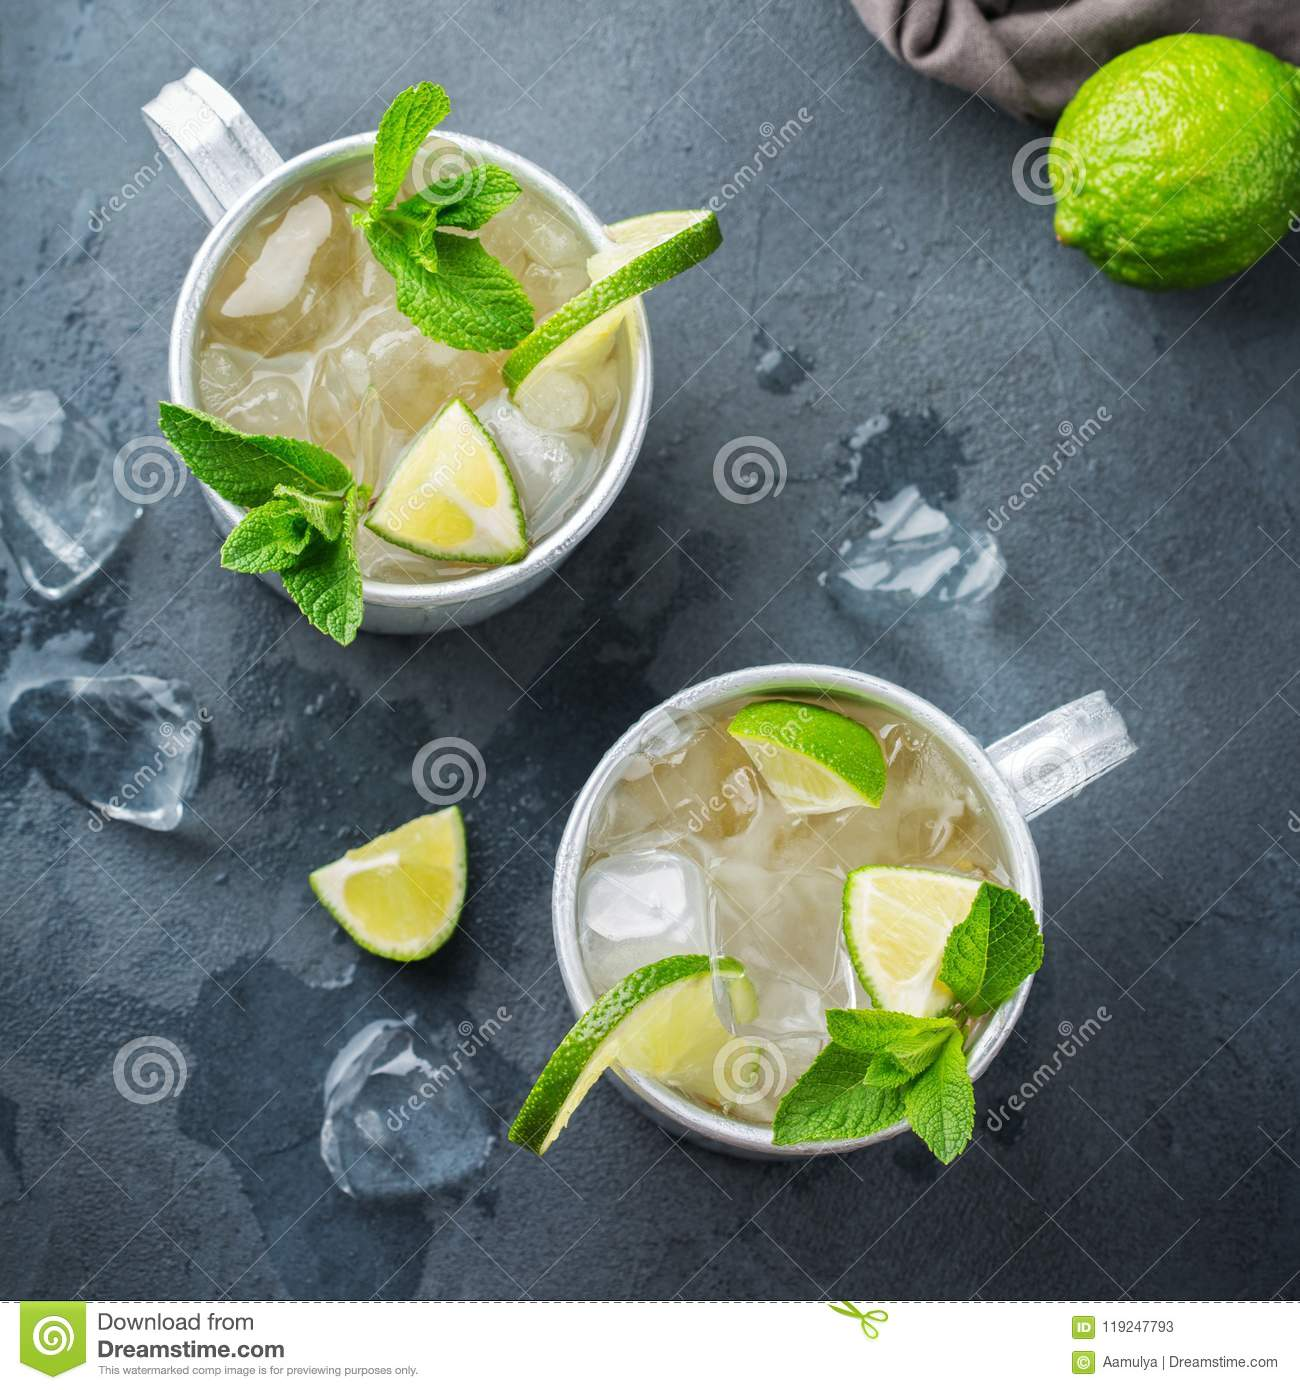 Moscow Mule Cocktail With Vodka Ginger Beer Lime And Mint Stock Image Image Of Vodka Metal 119247793